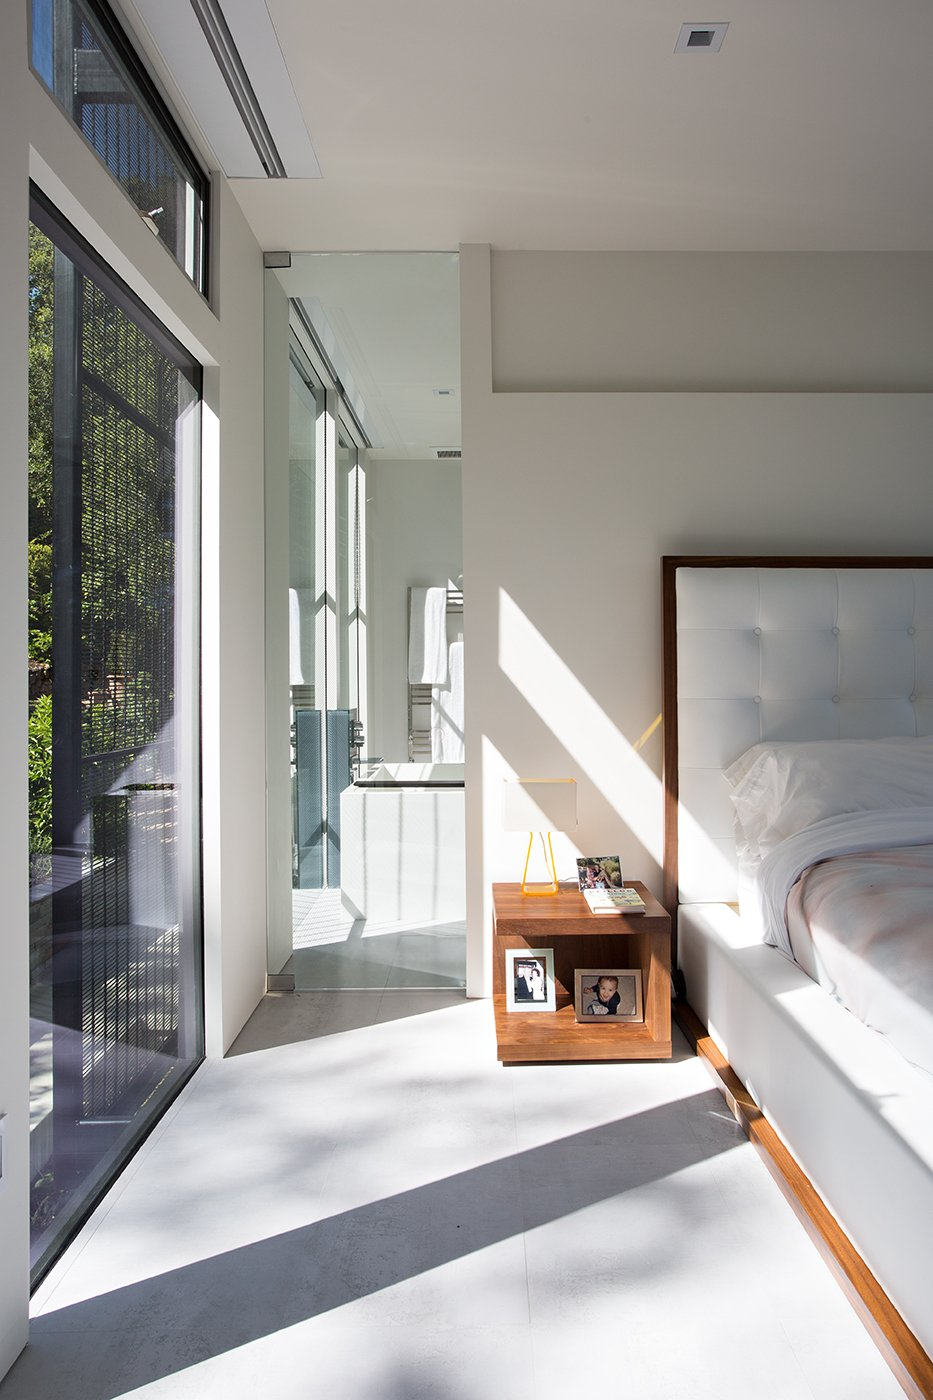 Light floods the second floor master bedroom, and floor-to-ceiling windows are buffered by adjacent steel mesh wall. A Modloft Ludlow platform bed anchors the room, and Pablo Designs bedside table lamps delicately punctuate the minimal space. Tagged: Bedroom, Ceiling Lighting, Bed, and Concrete Floor.  Bedroom by MeryamCafar from This Modern Addition in Northern California Has the Ultimate Rooftop Hangout